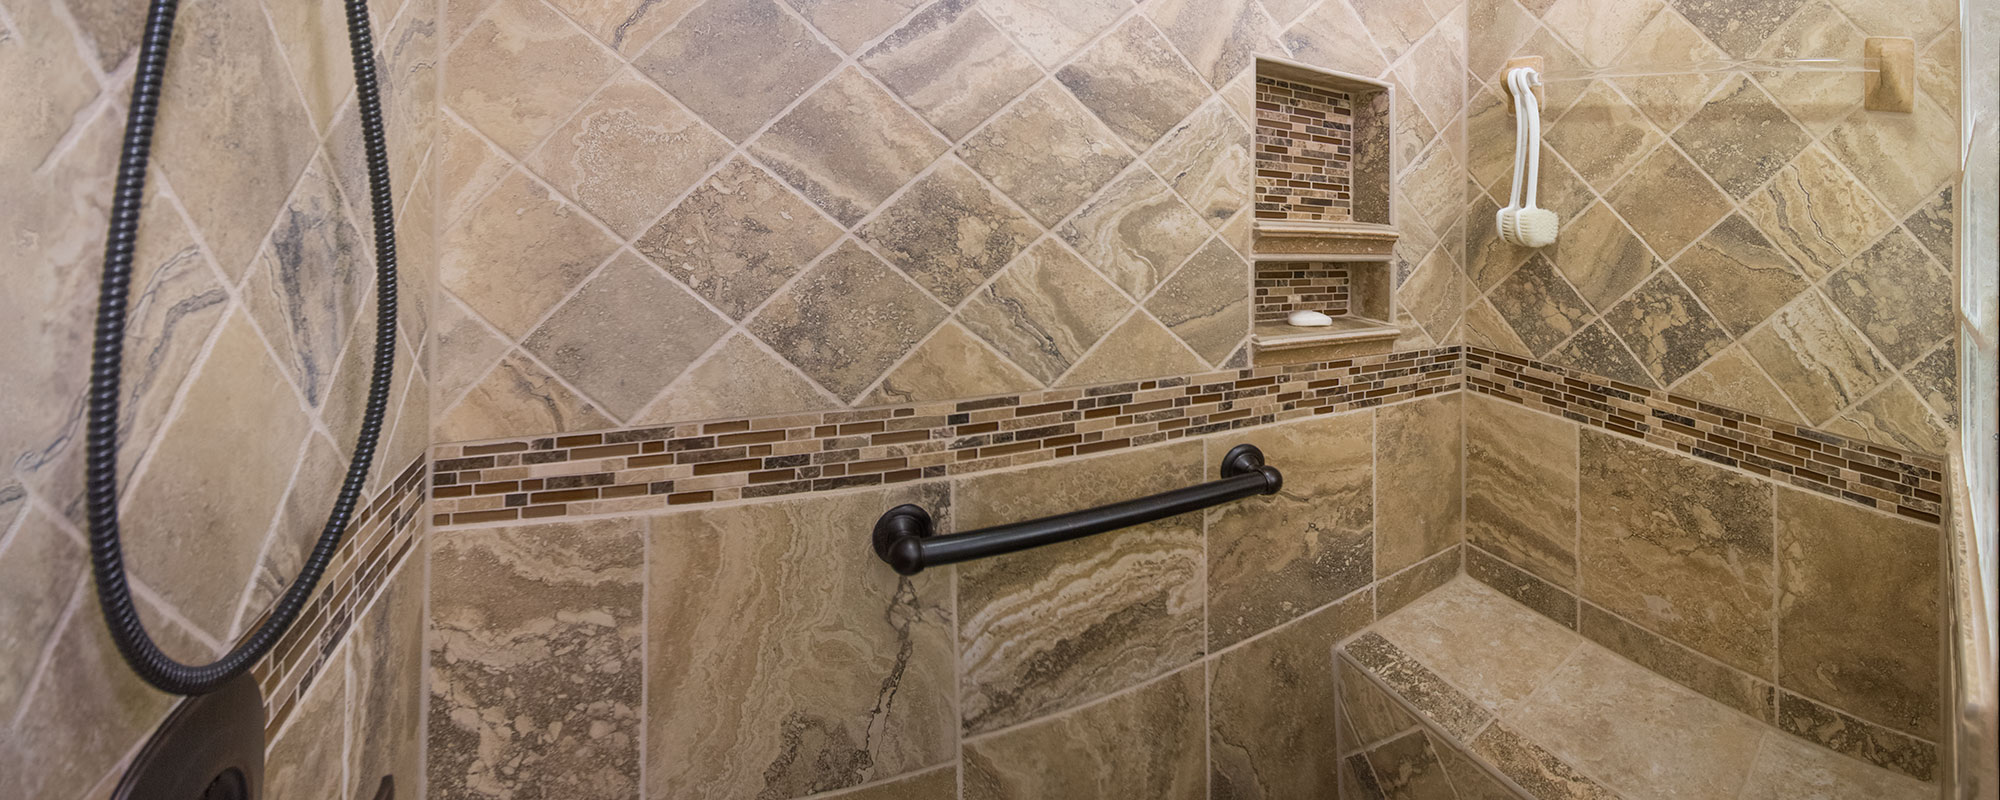 Tile work in shower